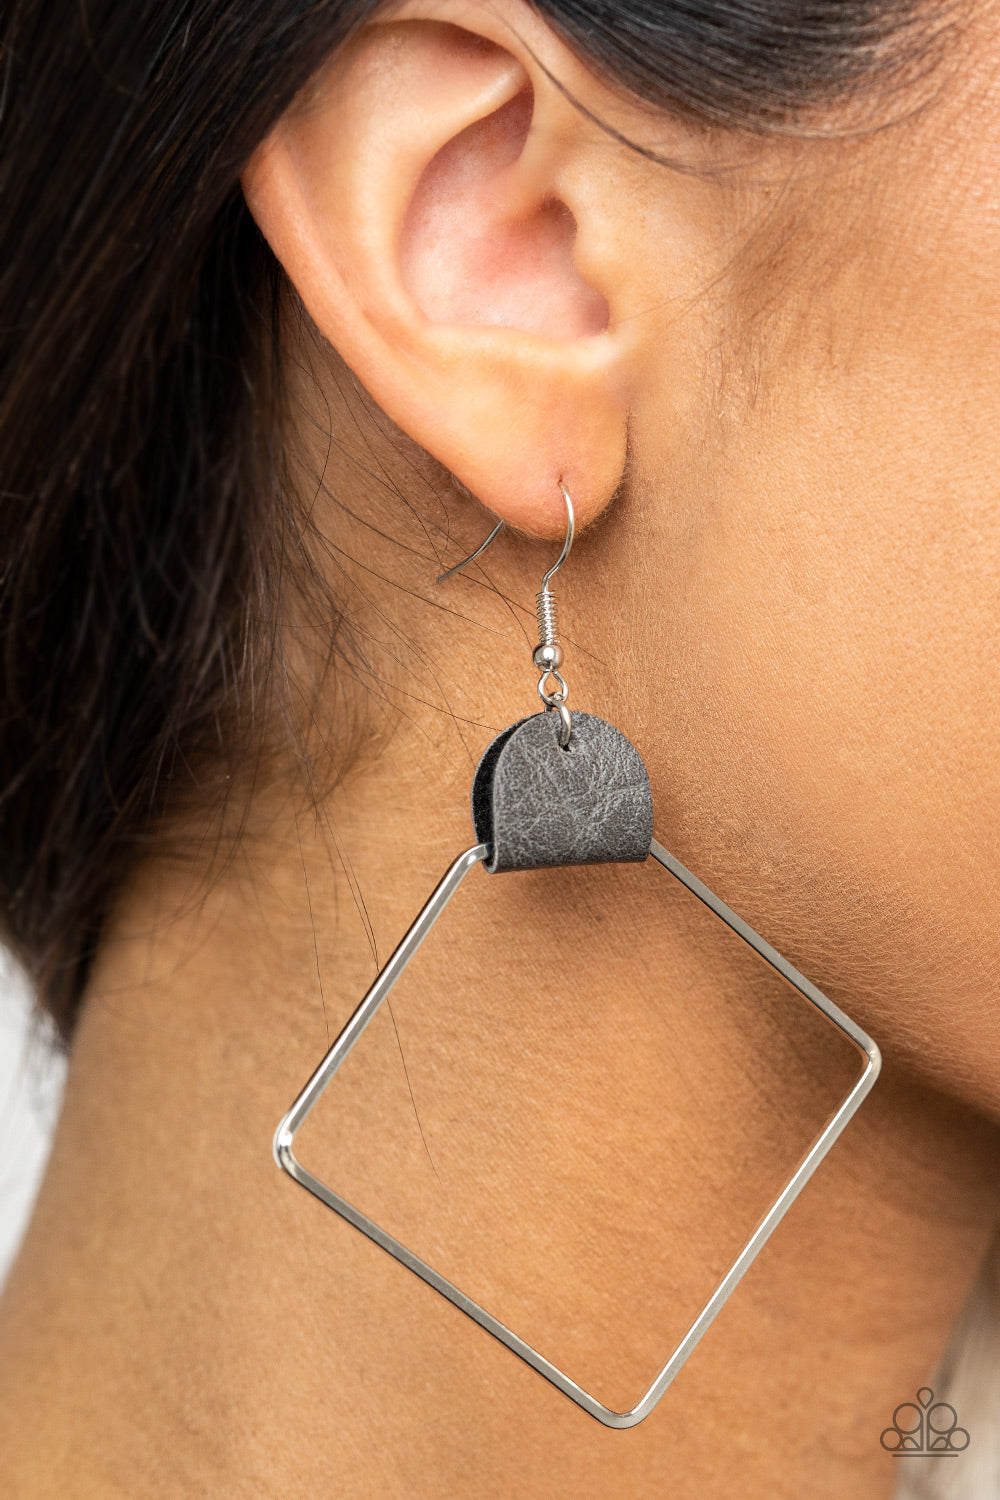 Friends of a LEATHER - Silver Earrings - Paparazzi Accessories